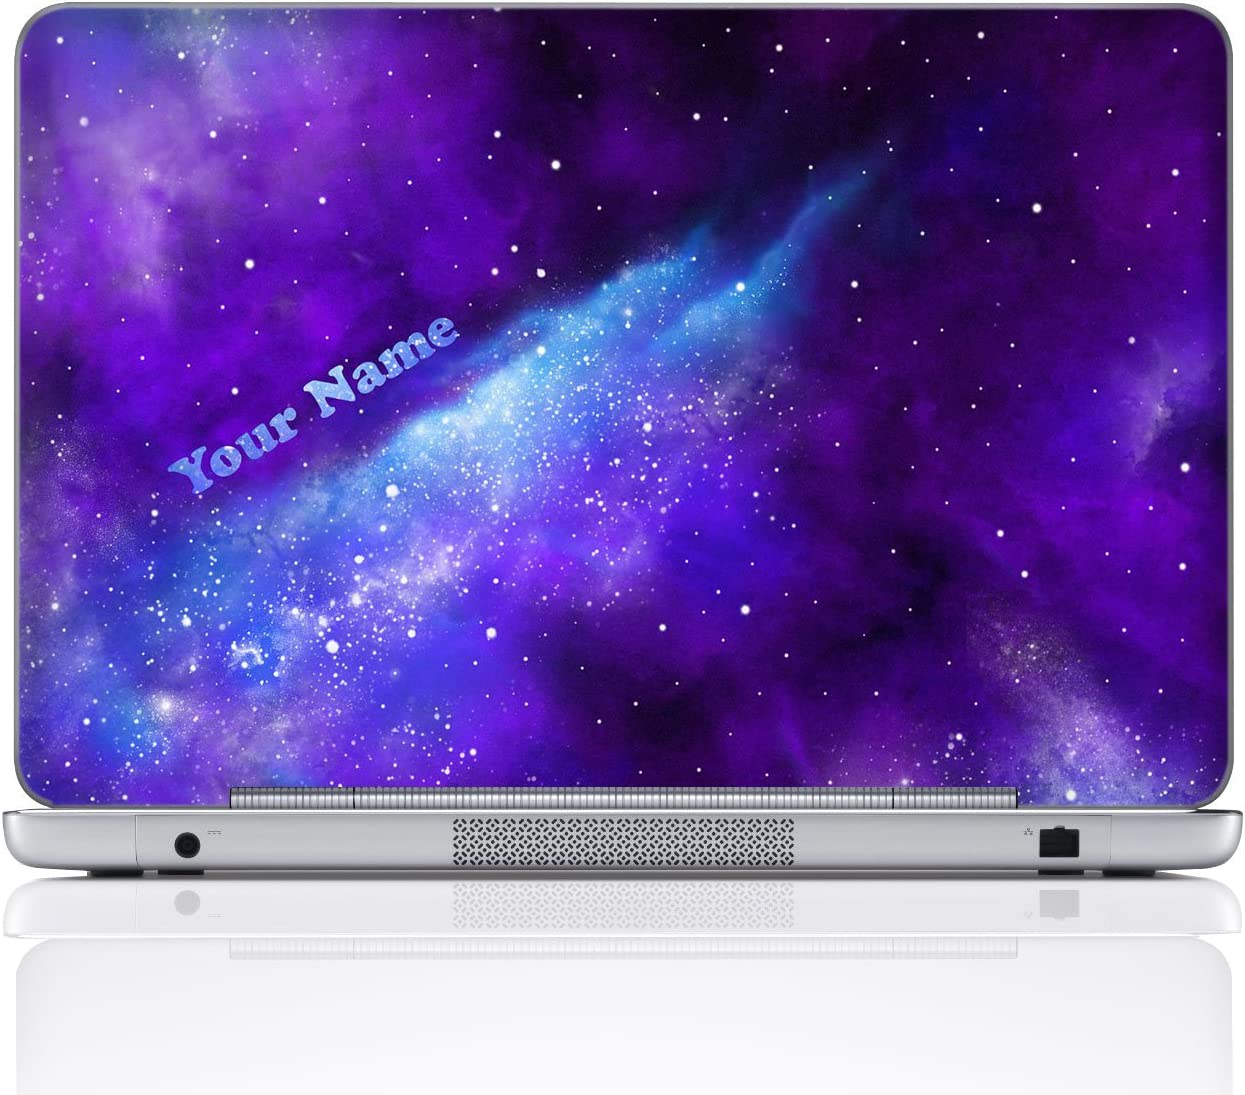 Meffort Inc Personalized Laptop Notebook Notebook Skin Sticker Cover Art Decal, Customize Your Name (15.6 Inch, Galaxy Universe)